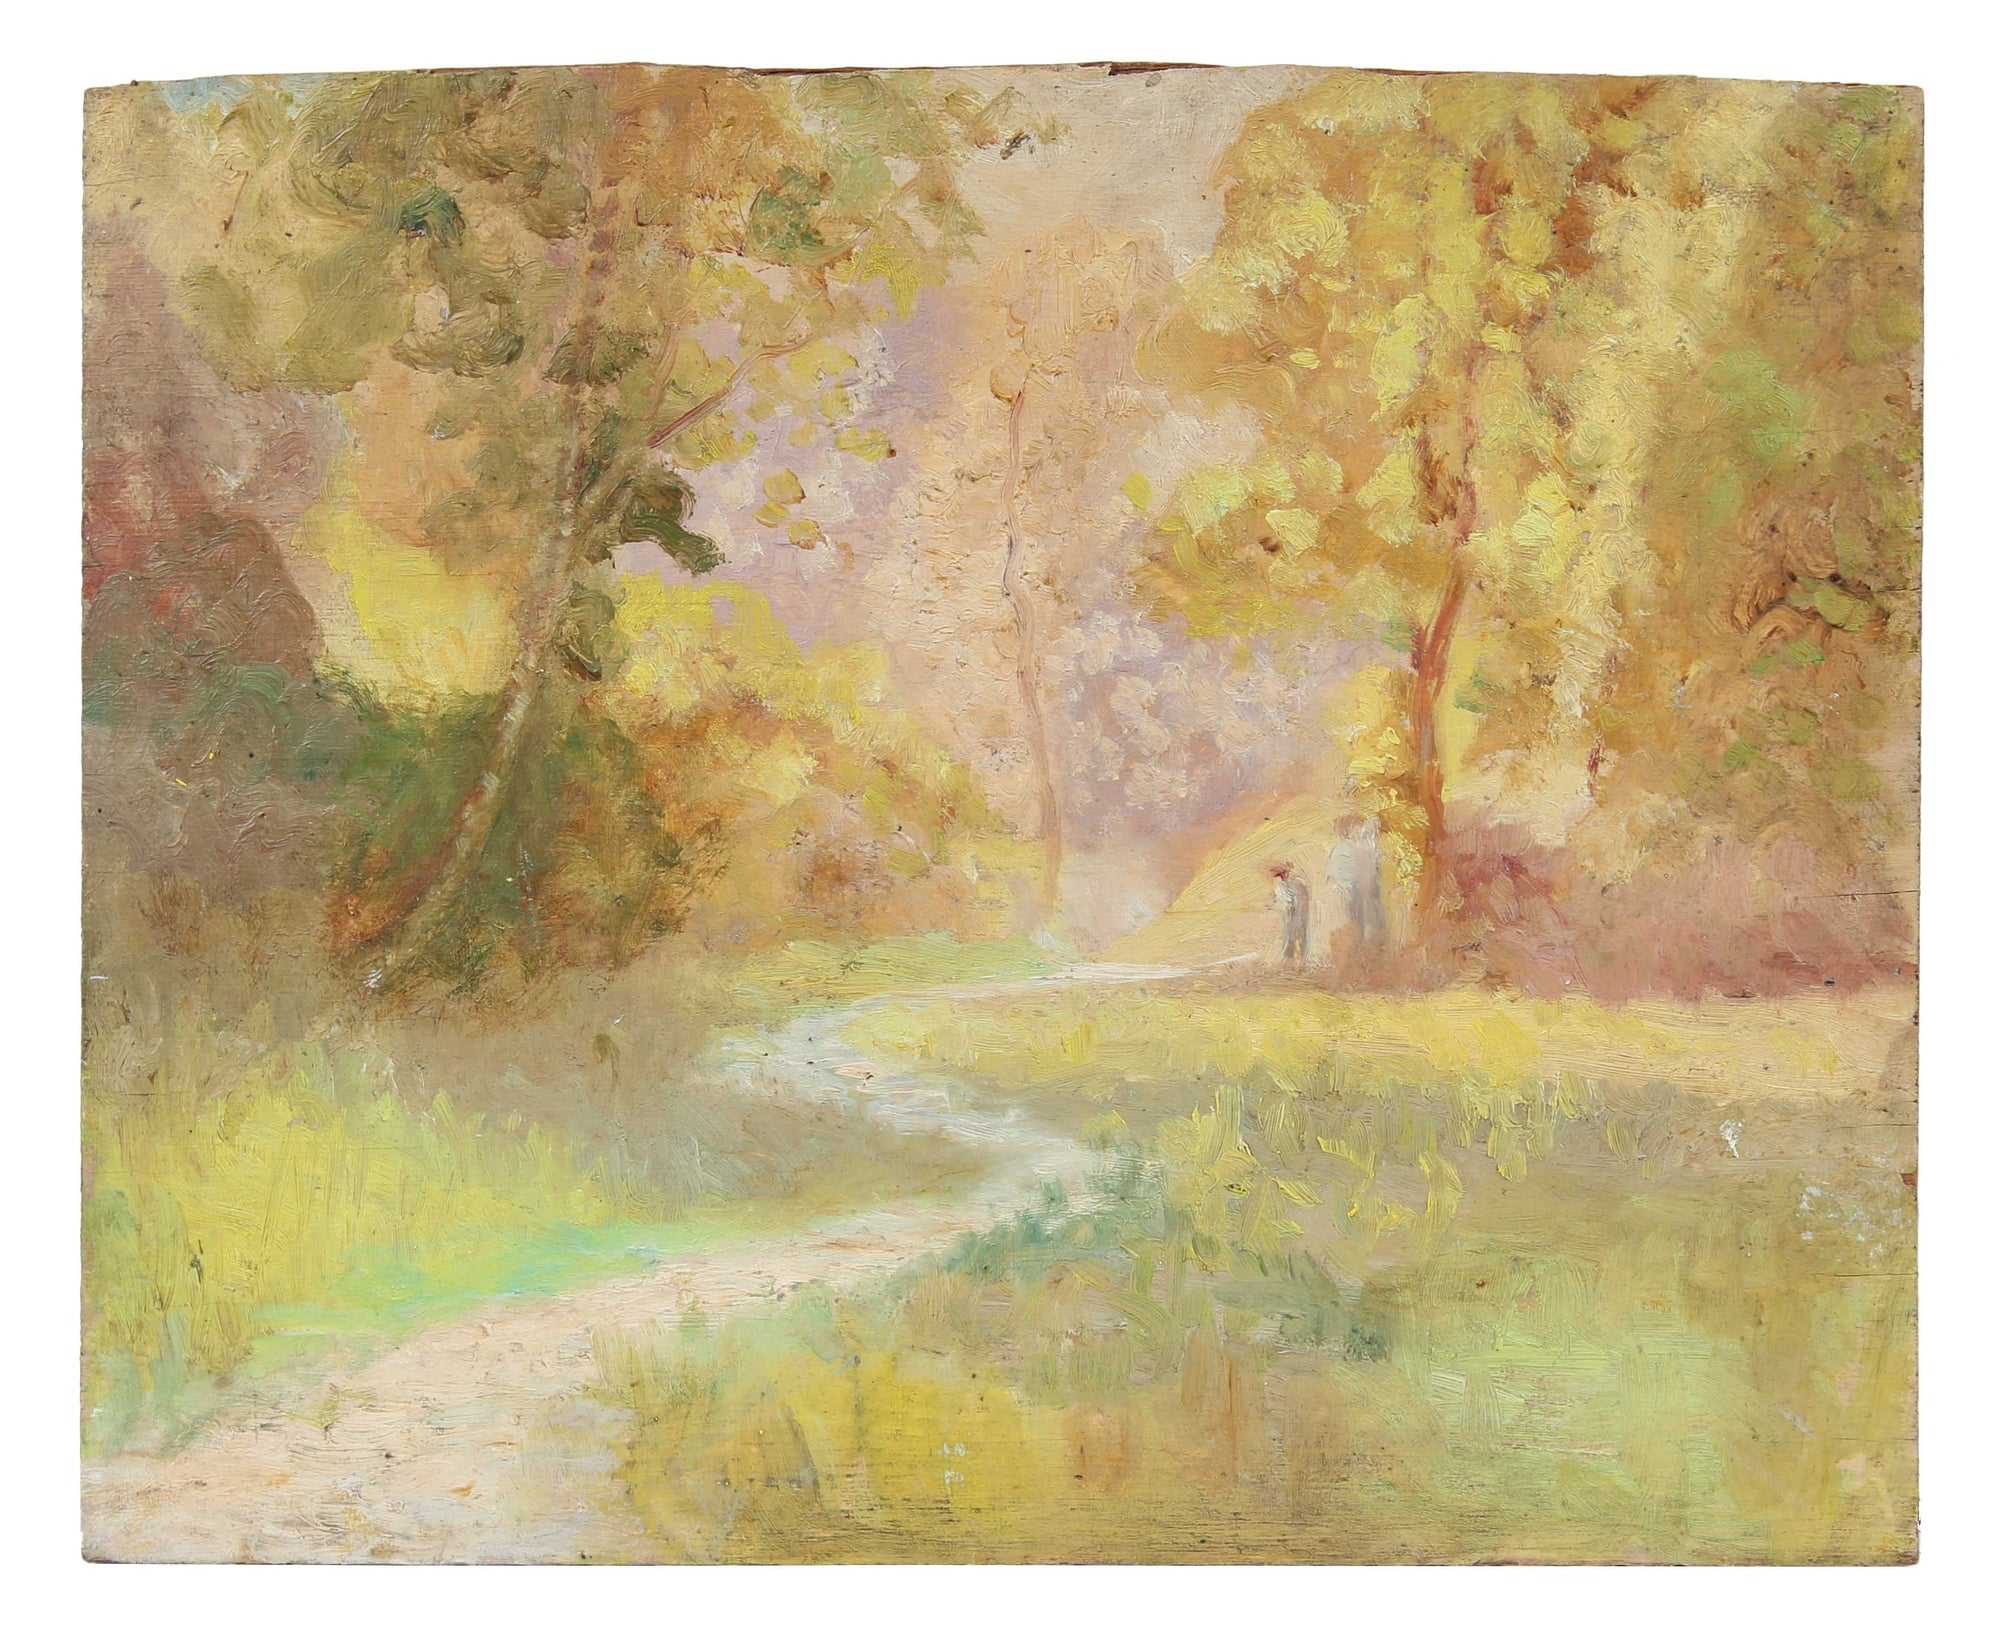 Forest Path Through the Trees<br>1900-30s Oil<br><br>A3536